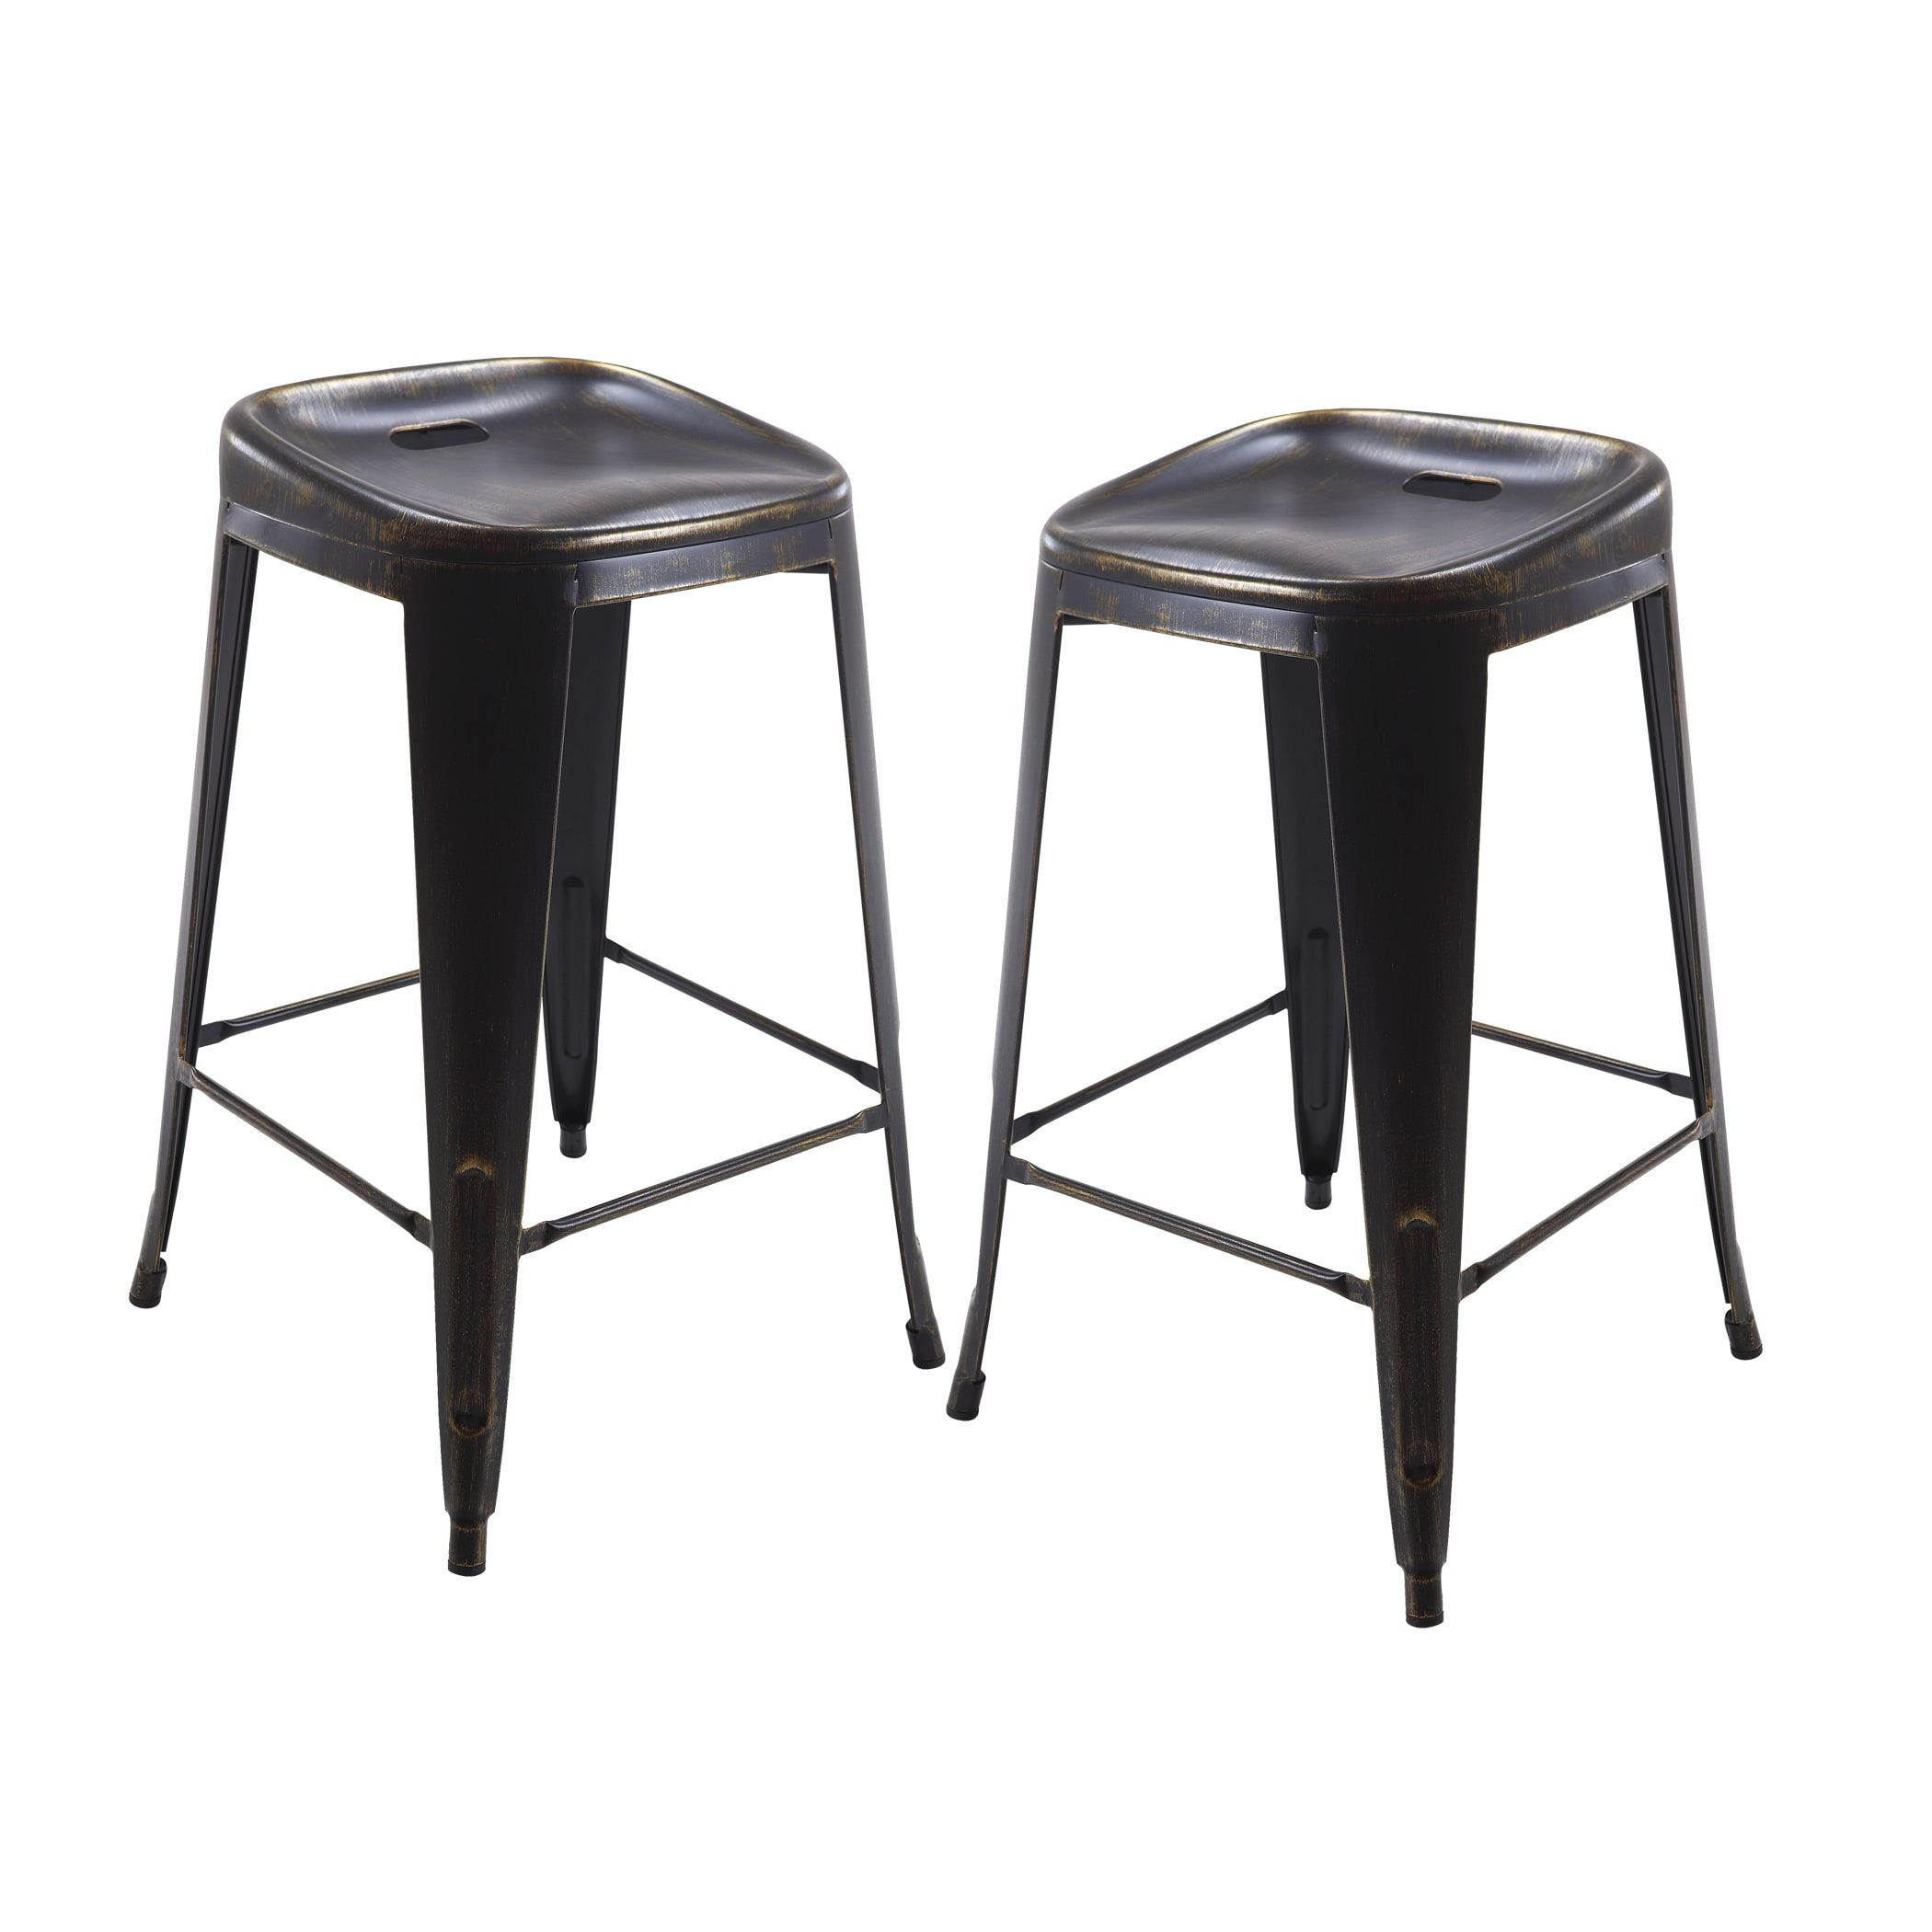 Vogue furniture direct metals 30 backless metal stool in matt fully assembled set of 2 black silver